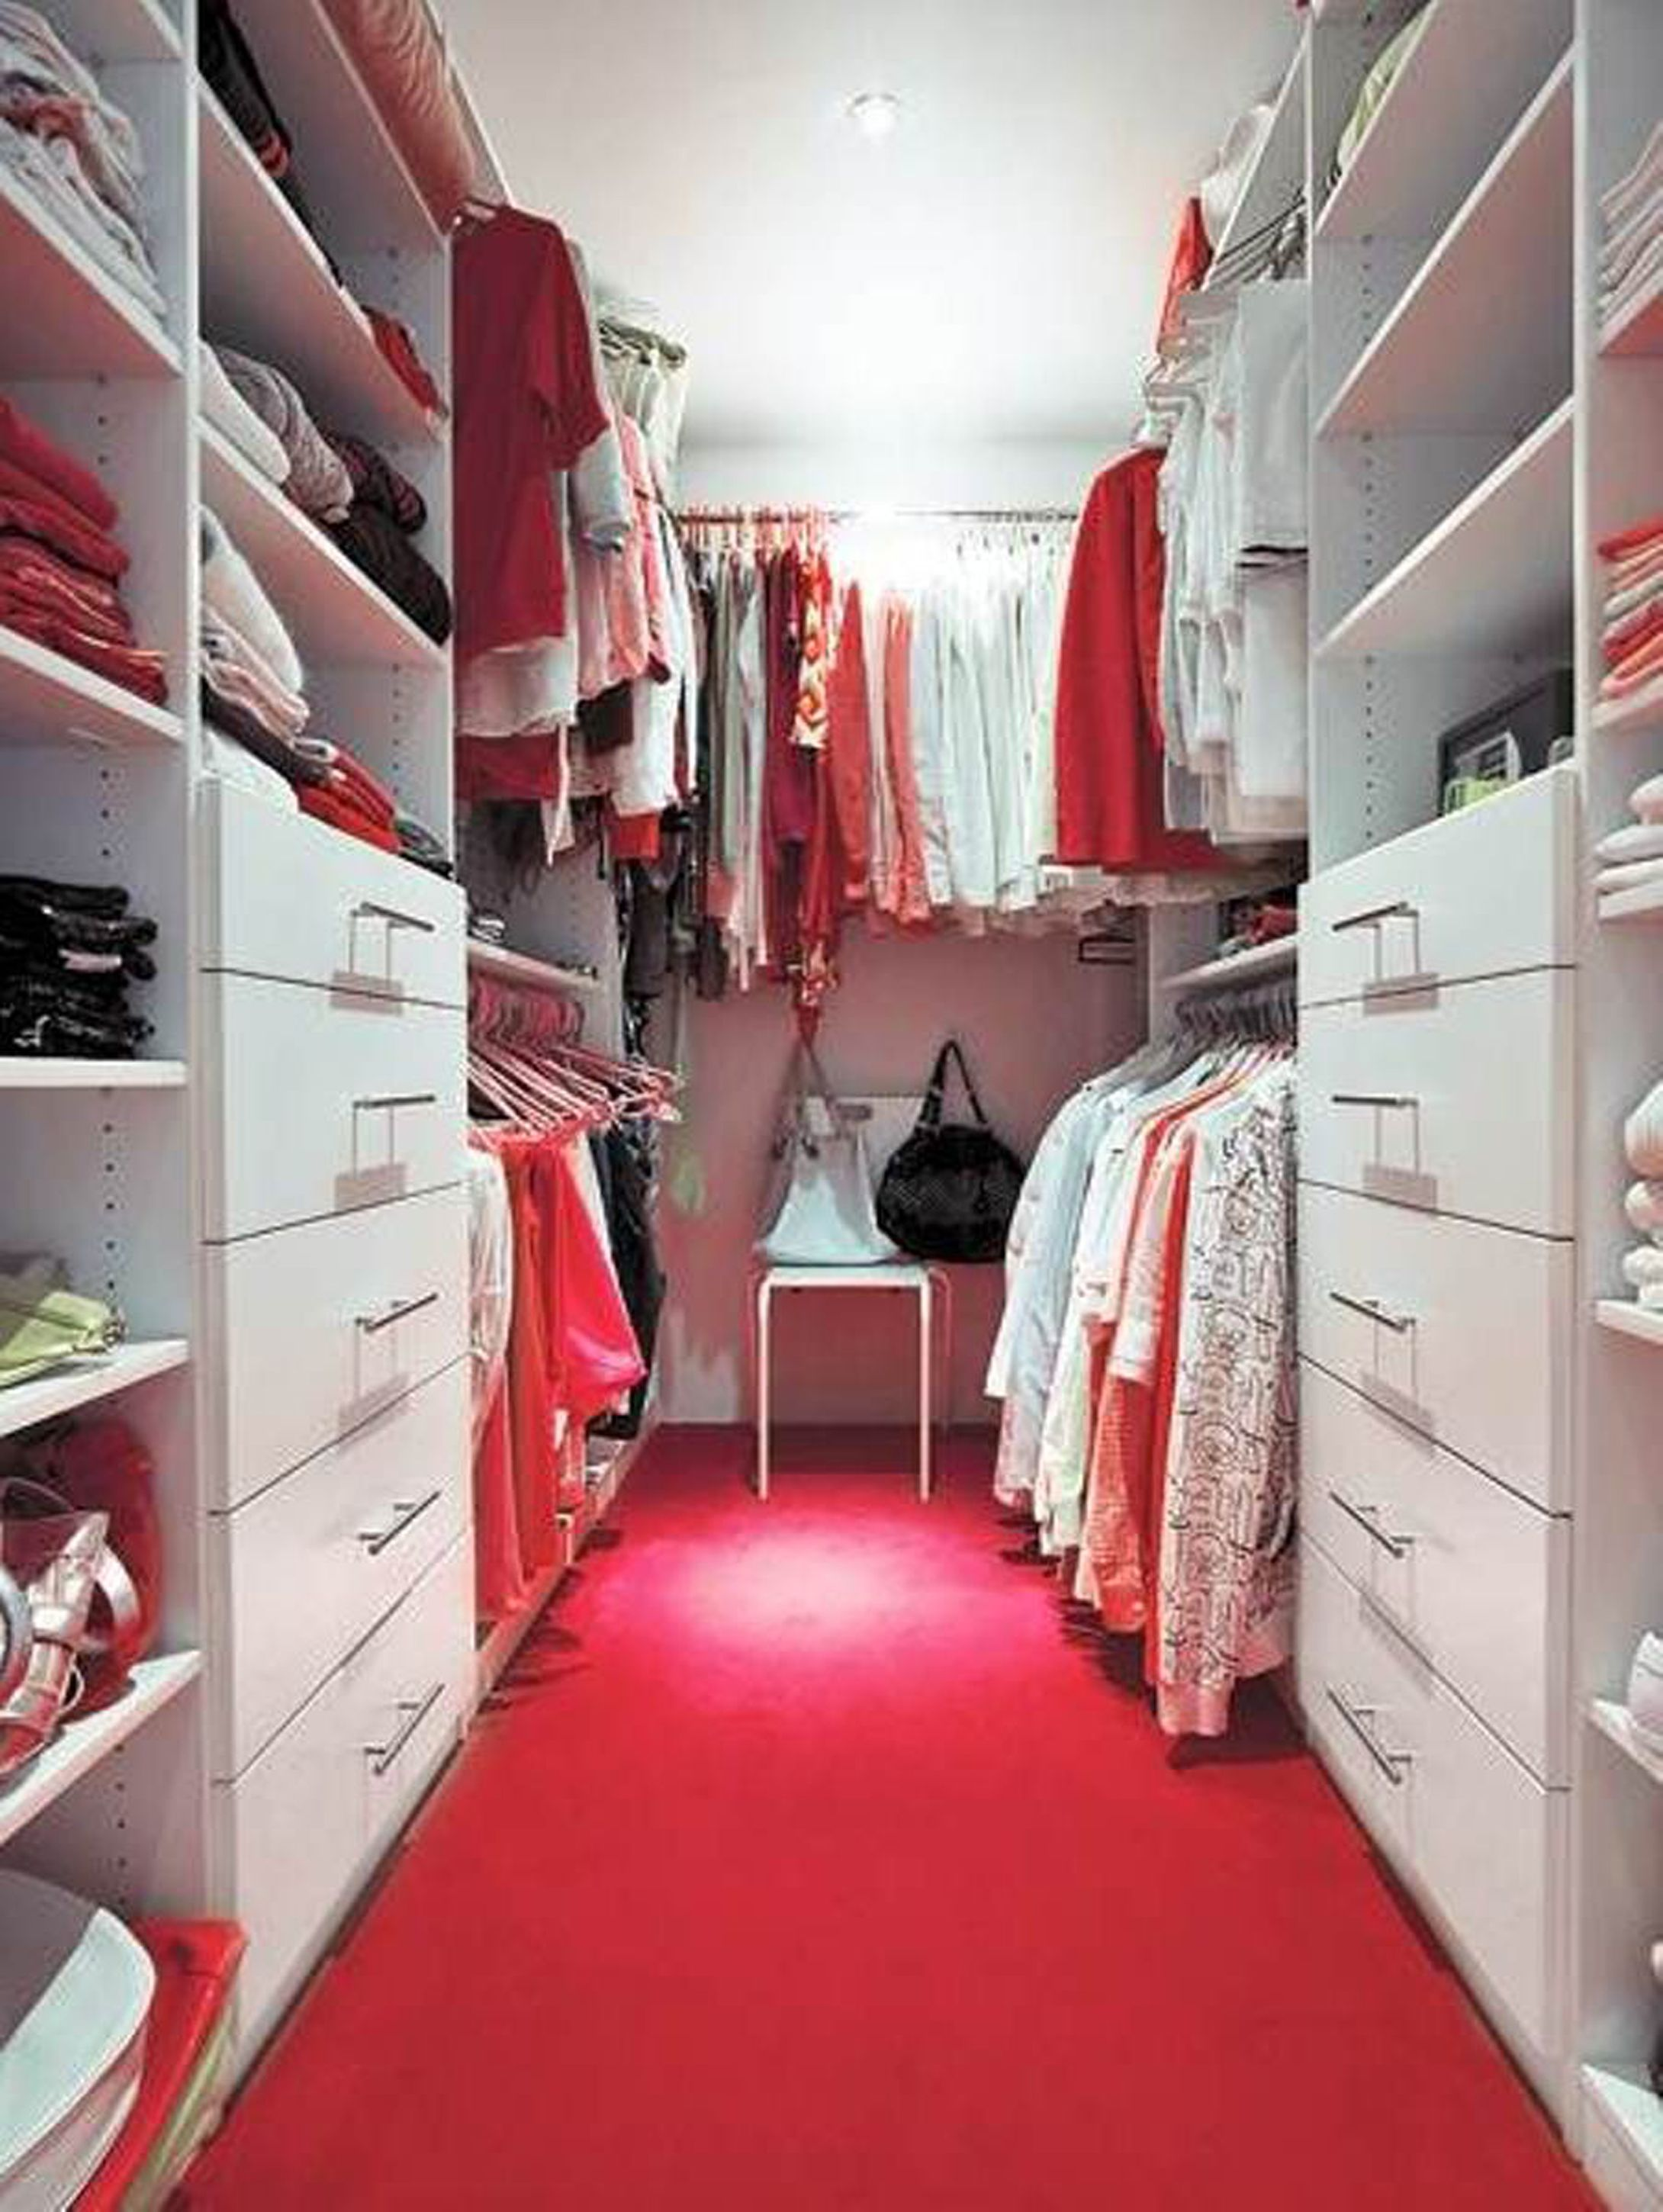 Walk In Closet Design Ideas in this post we have 21 best traditional storage closets design ideas for your beautiful Small Walk In Closet Design Ideas Stunning Kids Walk In Closets Ideas With White Rack And